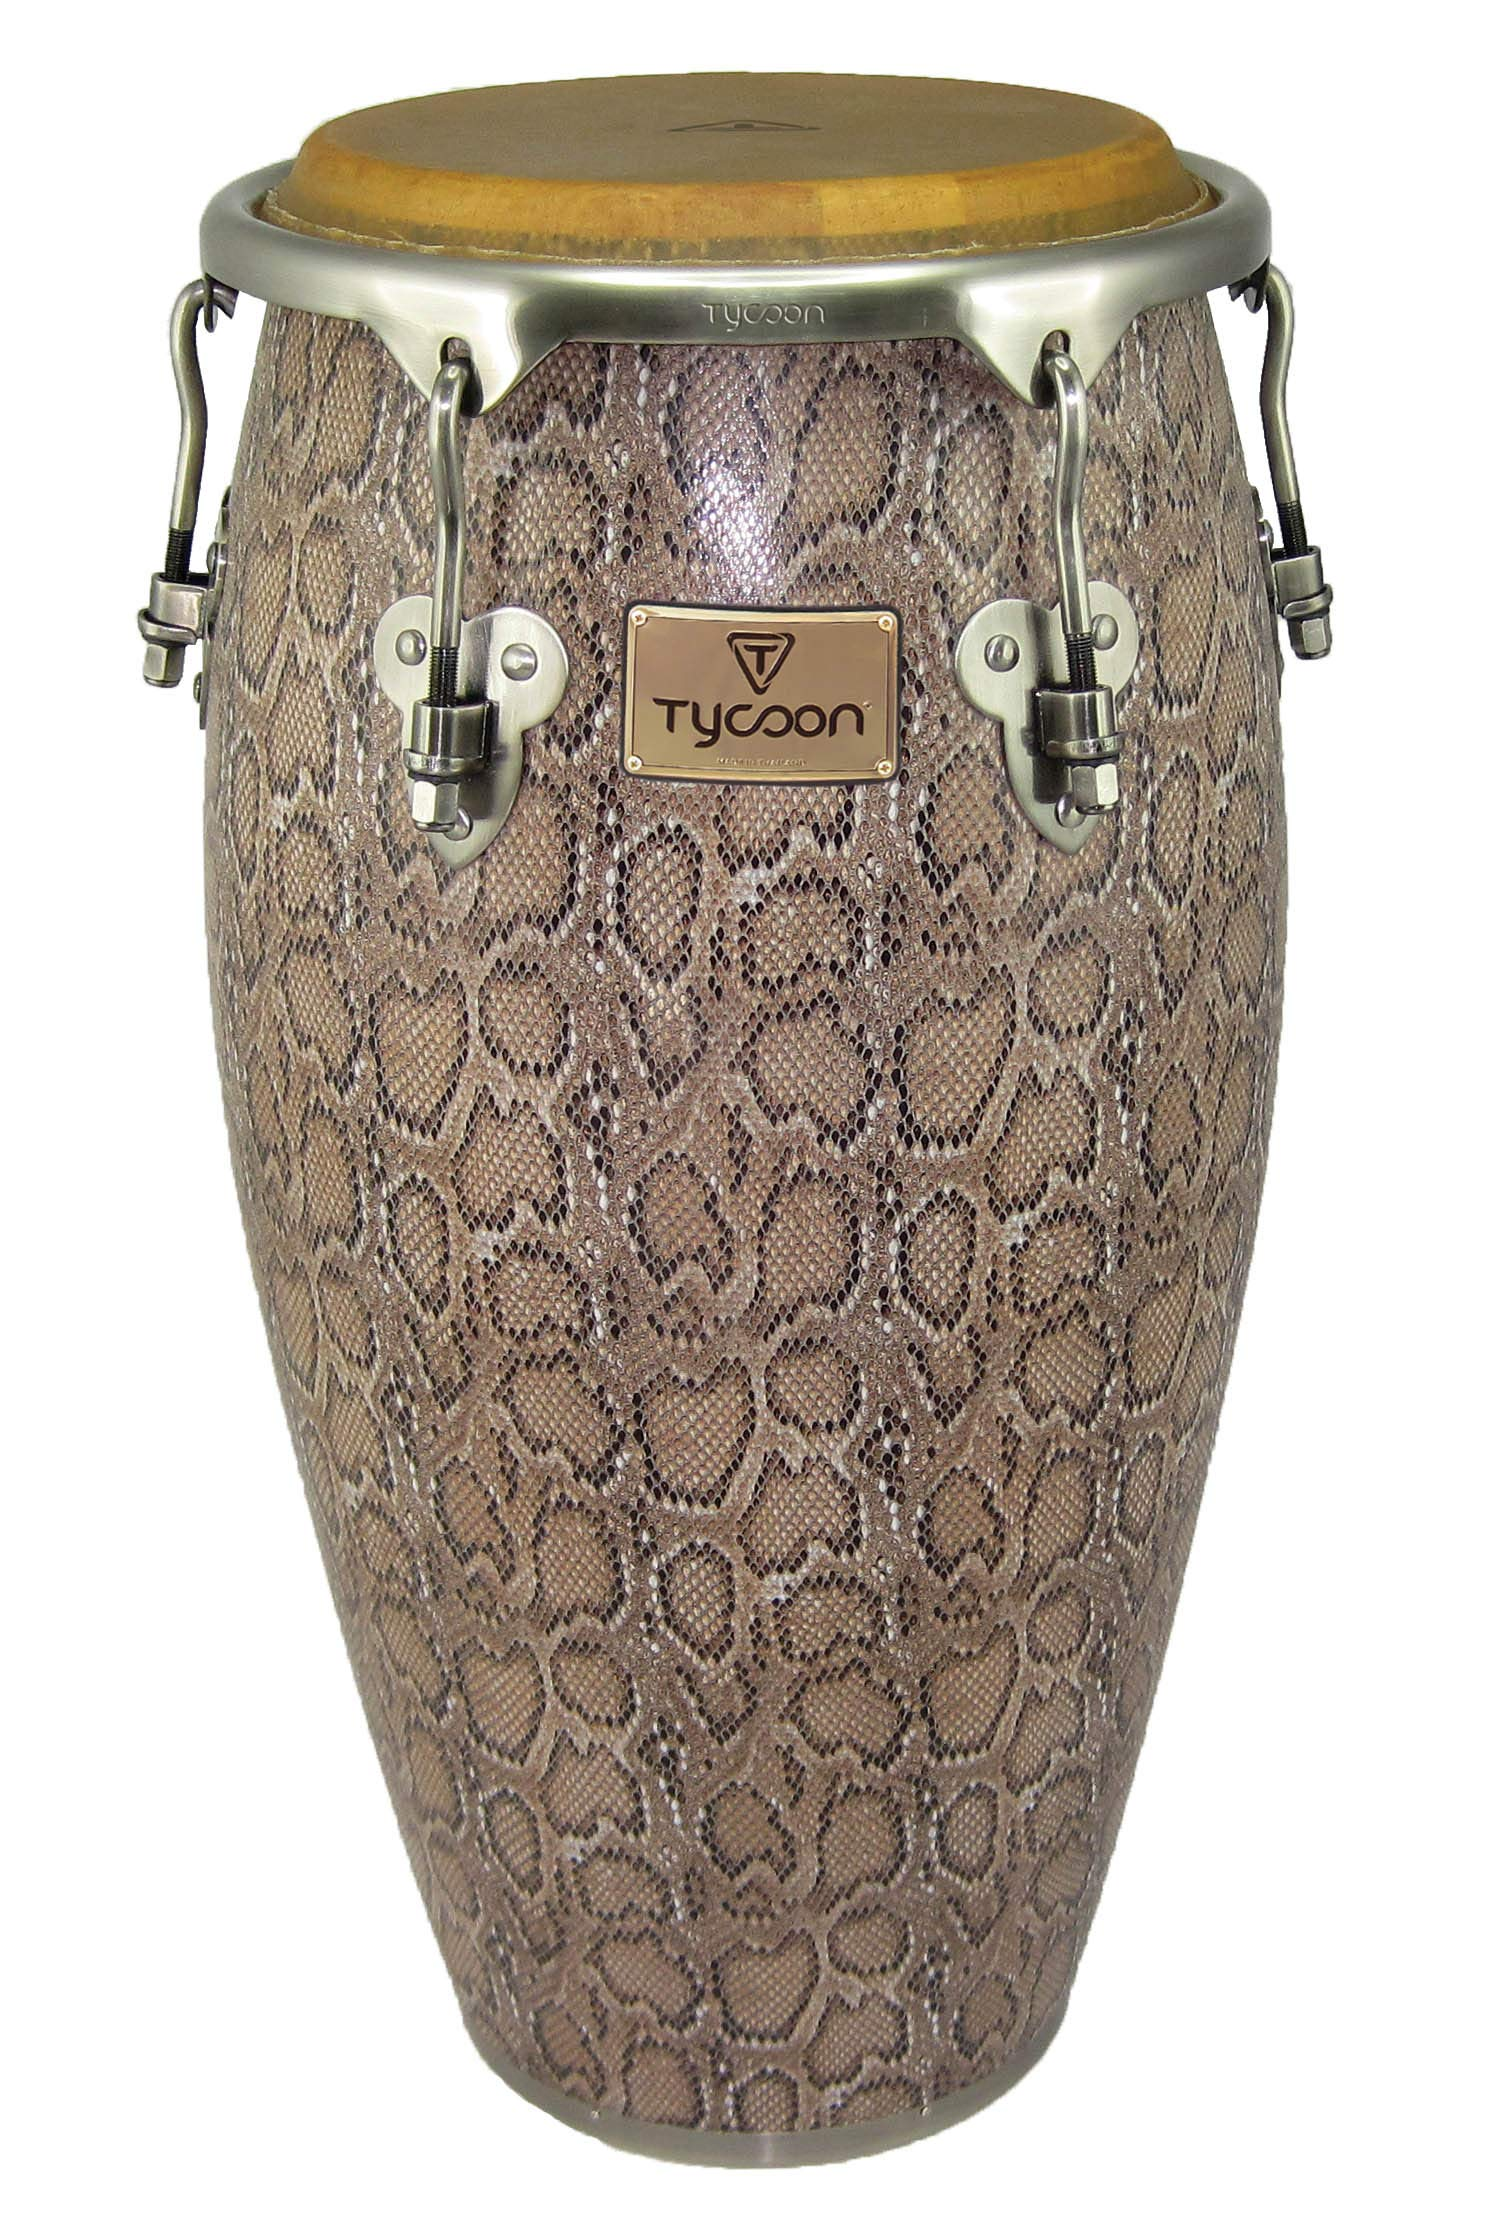 Tycoon Percussion MTCF-120BCF5 11-3/4 Inch Master Series Conga with Single Stand, Boa Finish